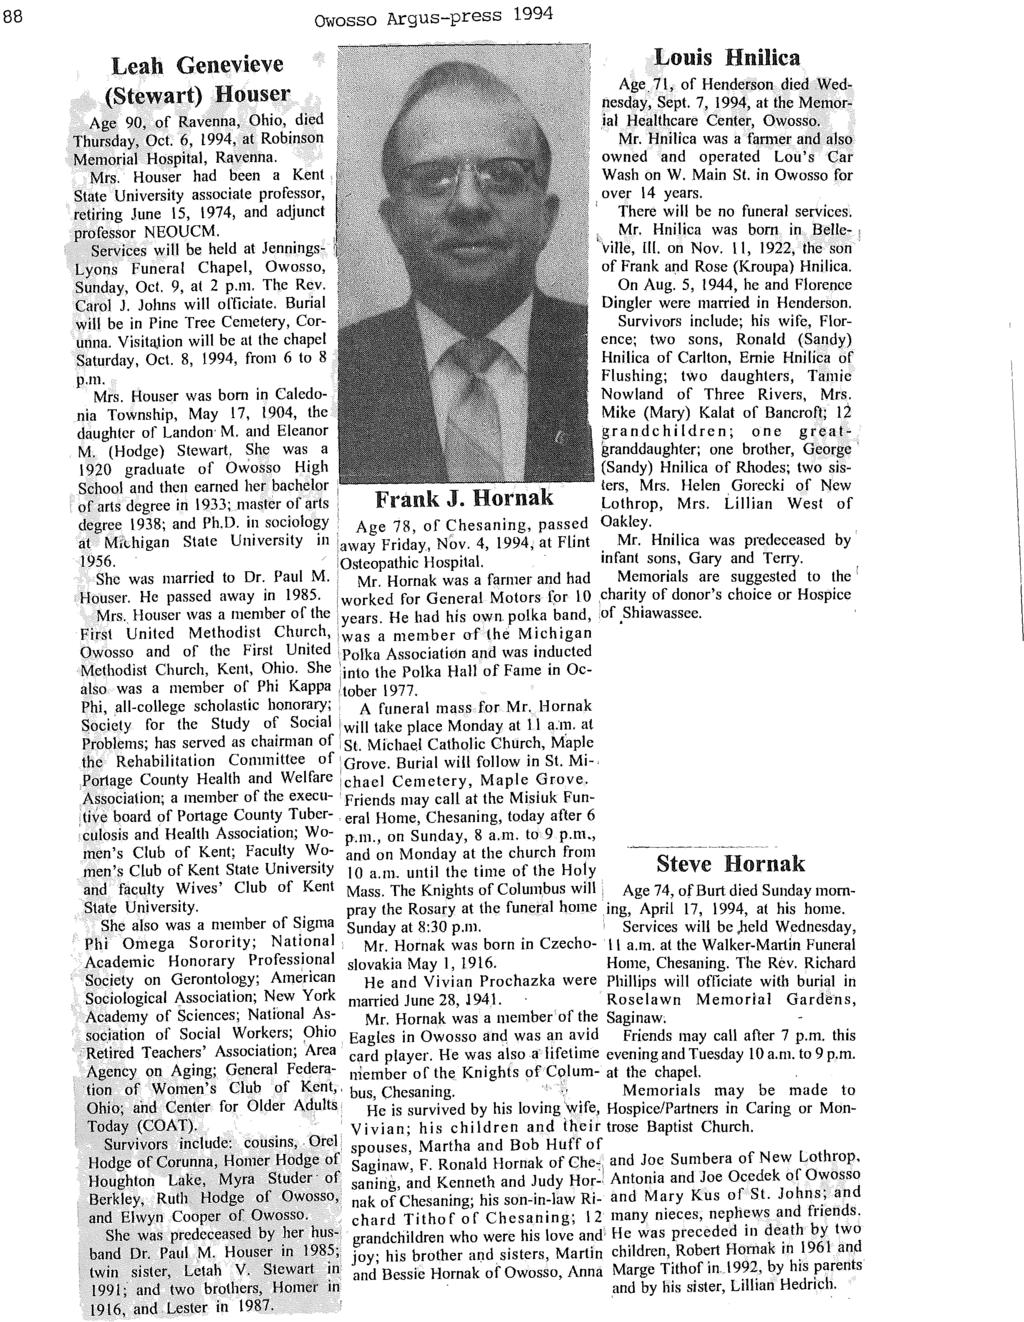 88 OWosso Argus-press 1994 Leah Genevieve Louis Hnnica ( Stewart) Houser Age,71, of Henderson died Wednesday, Sept. 7, 1994, at the Memor- Age 90, of Ravenna, Ohio, died.ial Healthcare Center, Owosso.